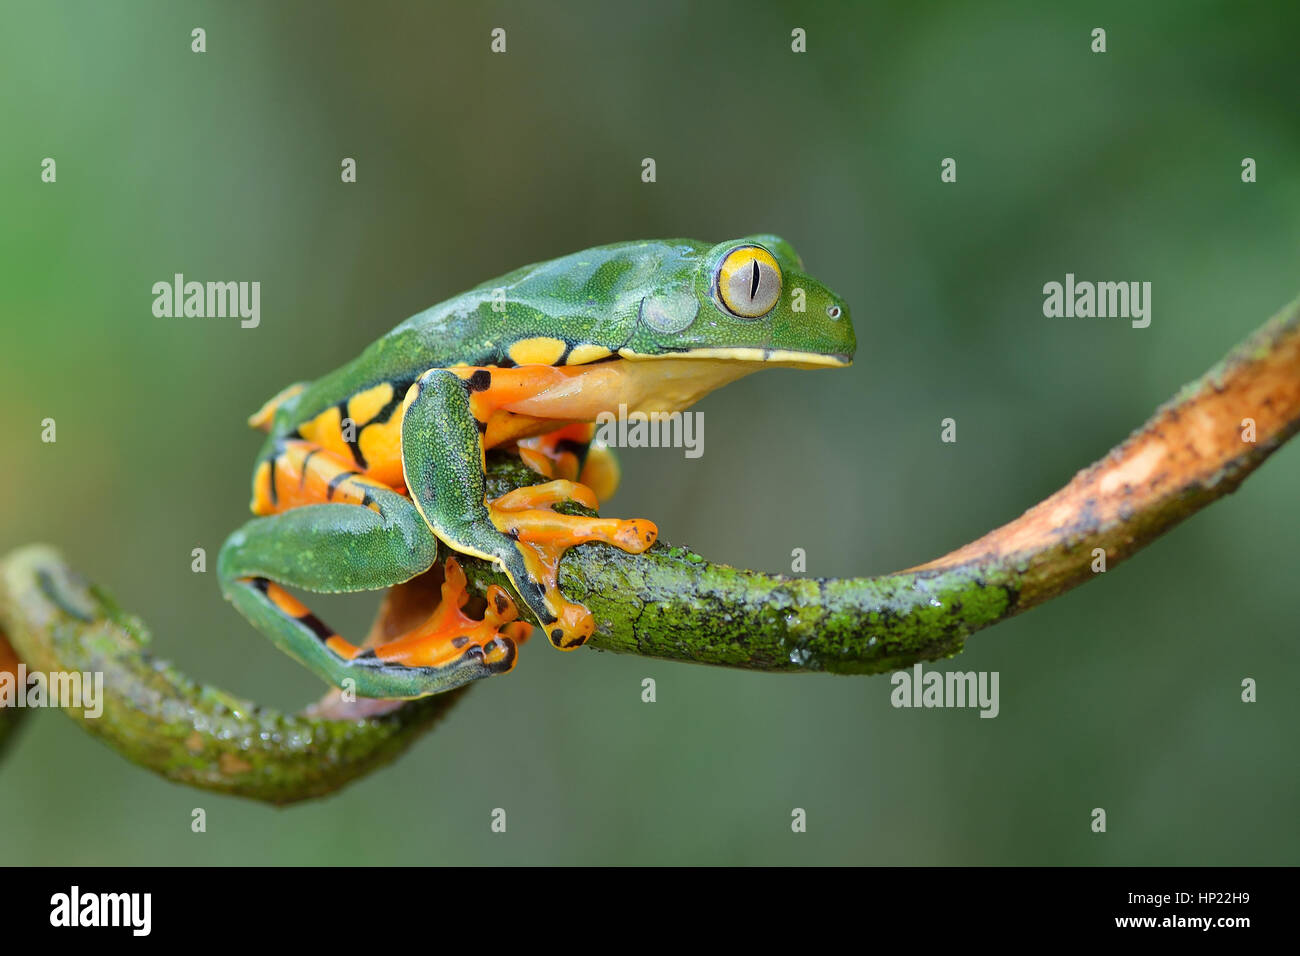 A rare Splendid Leaf frog in Costa Rica lowland rain forest - Stock Image